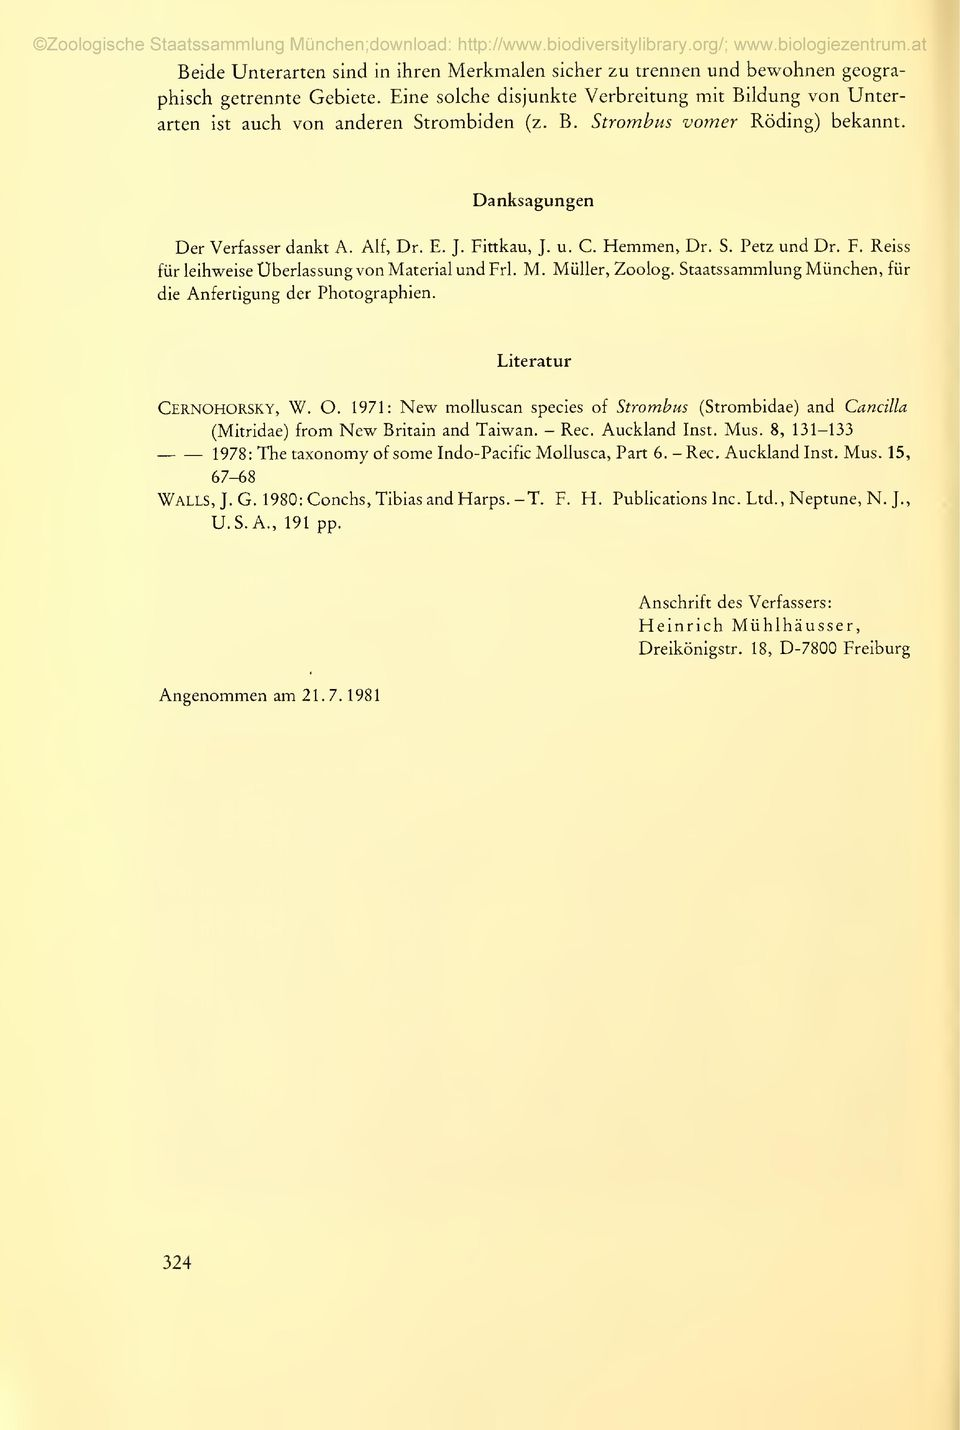 Staatssammlung München, für die Anfertigung der Photographien. Literatur CernoHORSKY, W. O. 1971: New molluscan species of Strombus (Strombidae) and Cancüla (Mitridae) from New Britain and Taiwan.